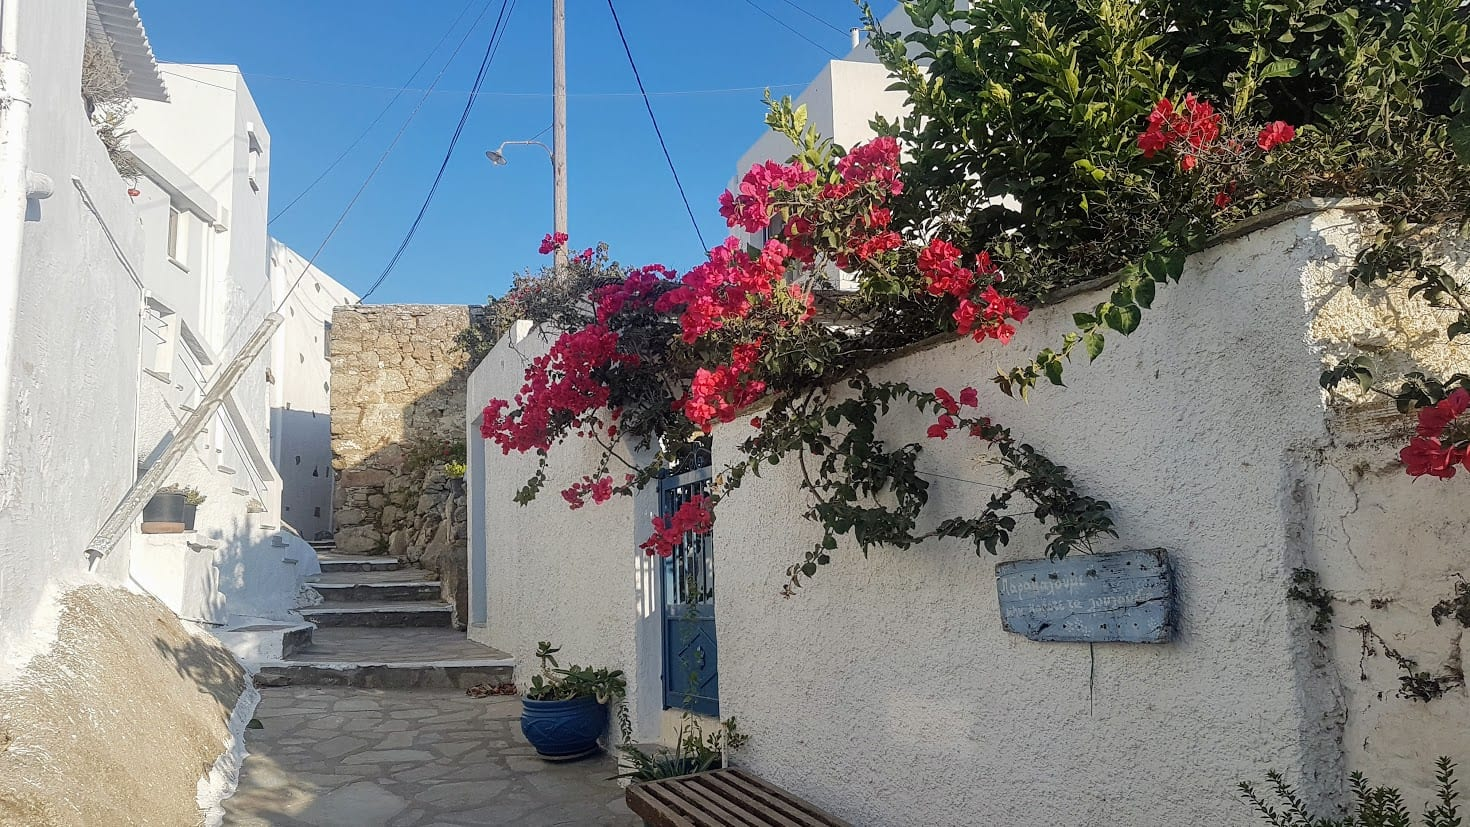 Travel guide to Tinos Greece